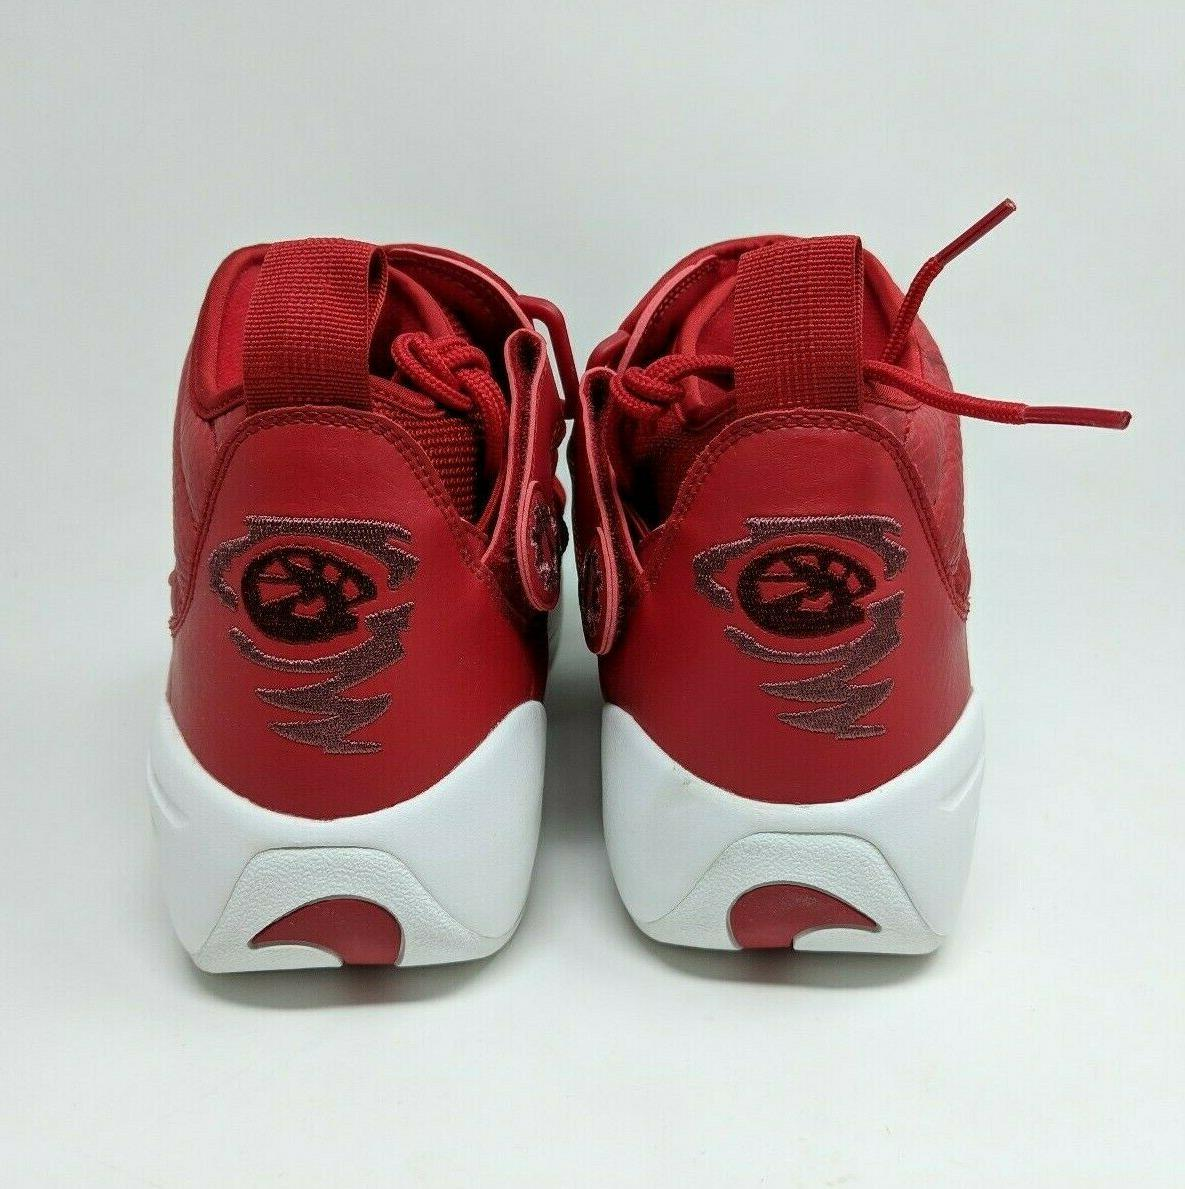 Nike Air Shake Ndestrukt Shoes 880869-600 Size